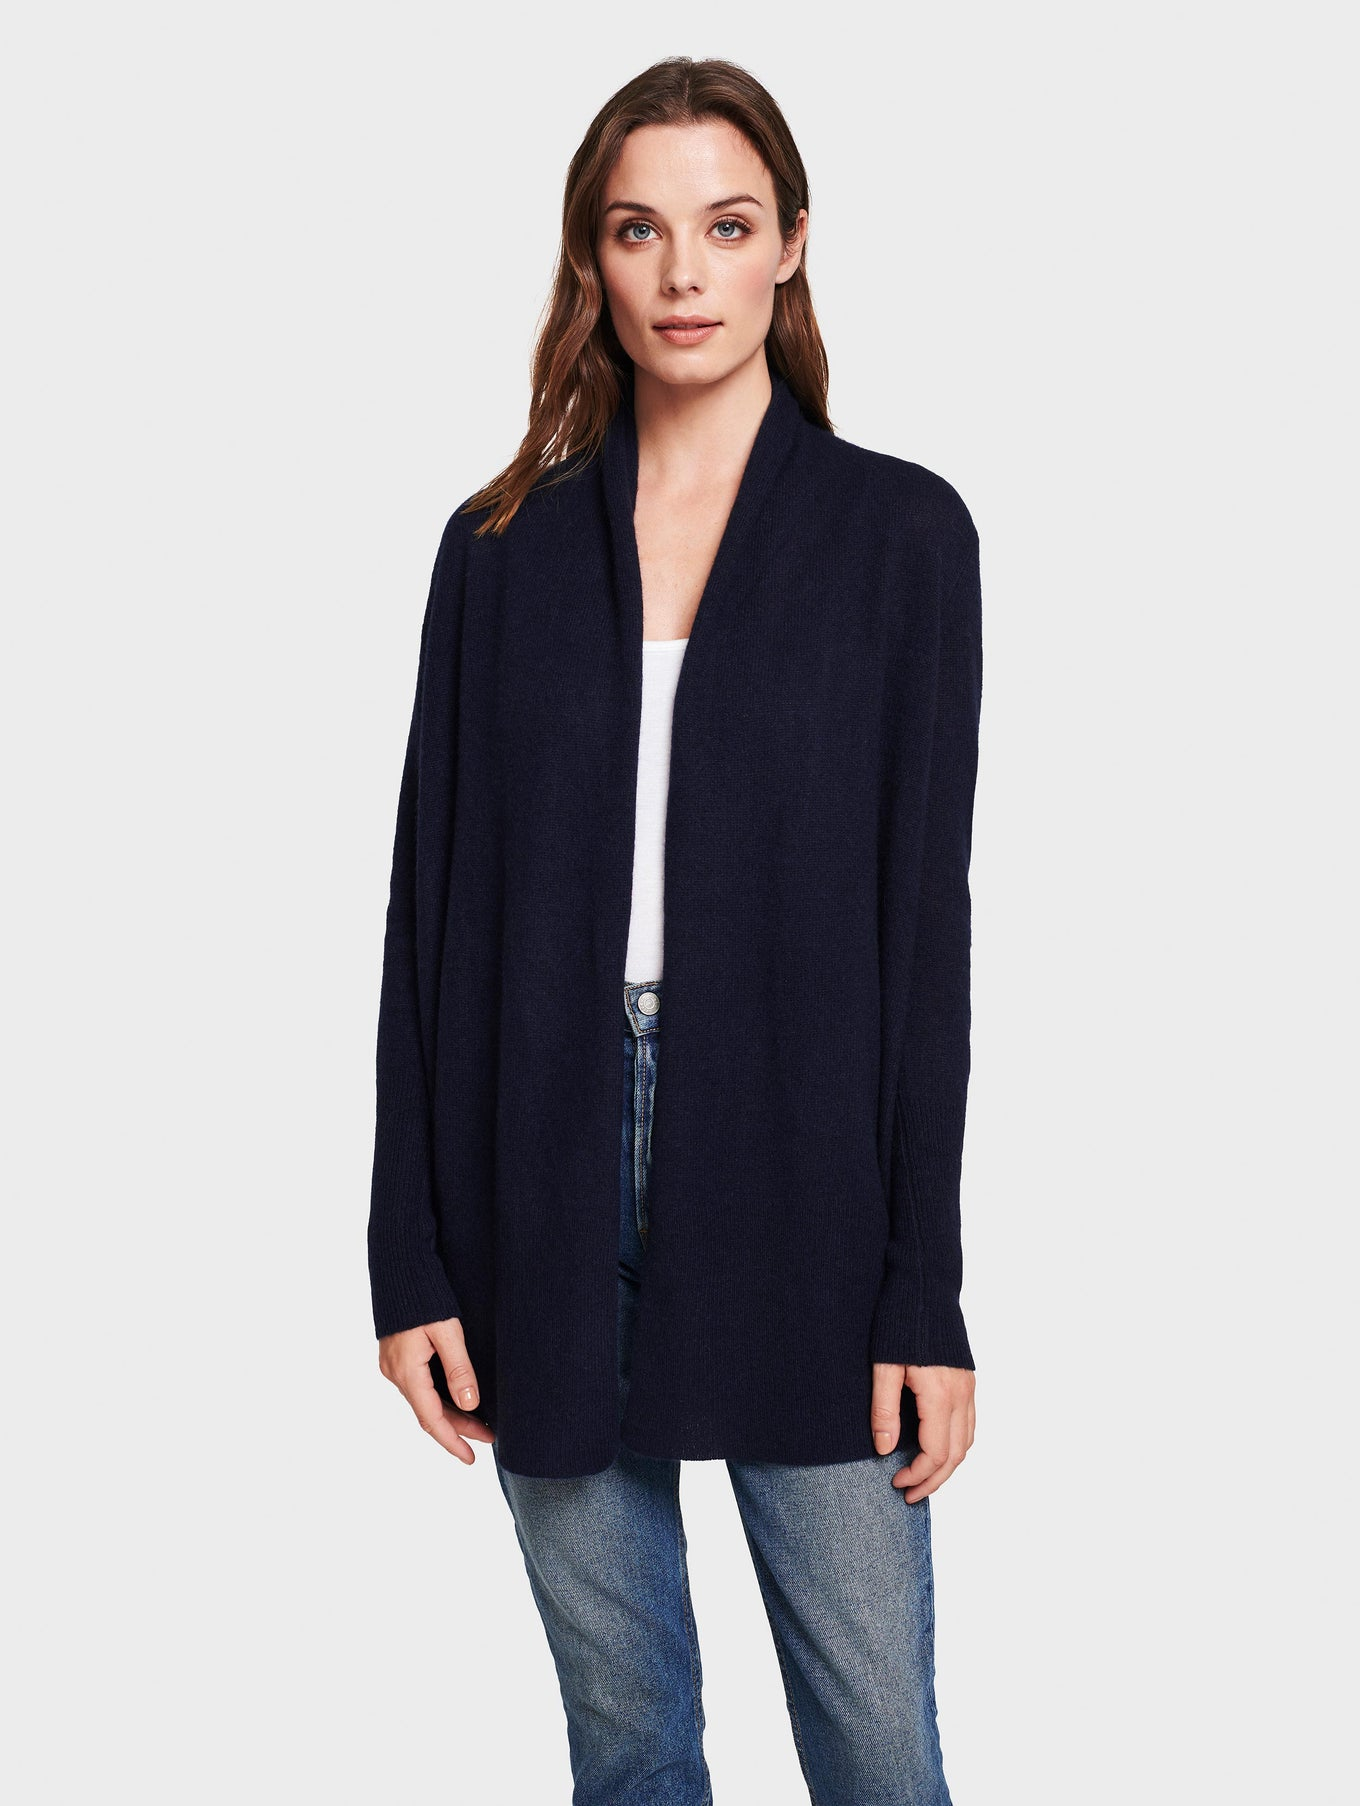 Cashmere High Rib Cardigan